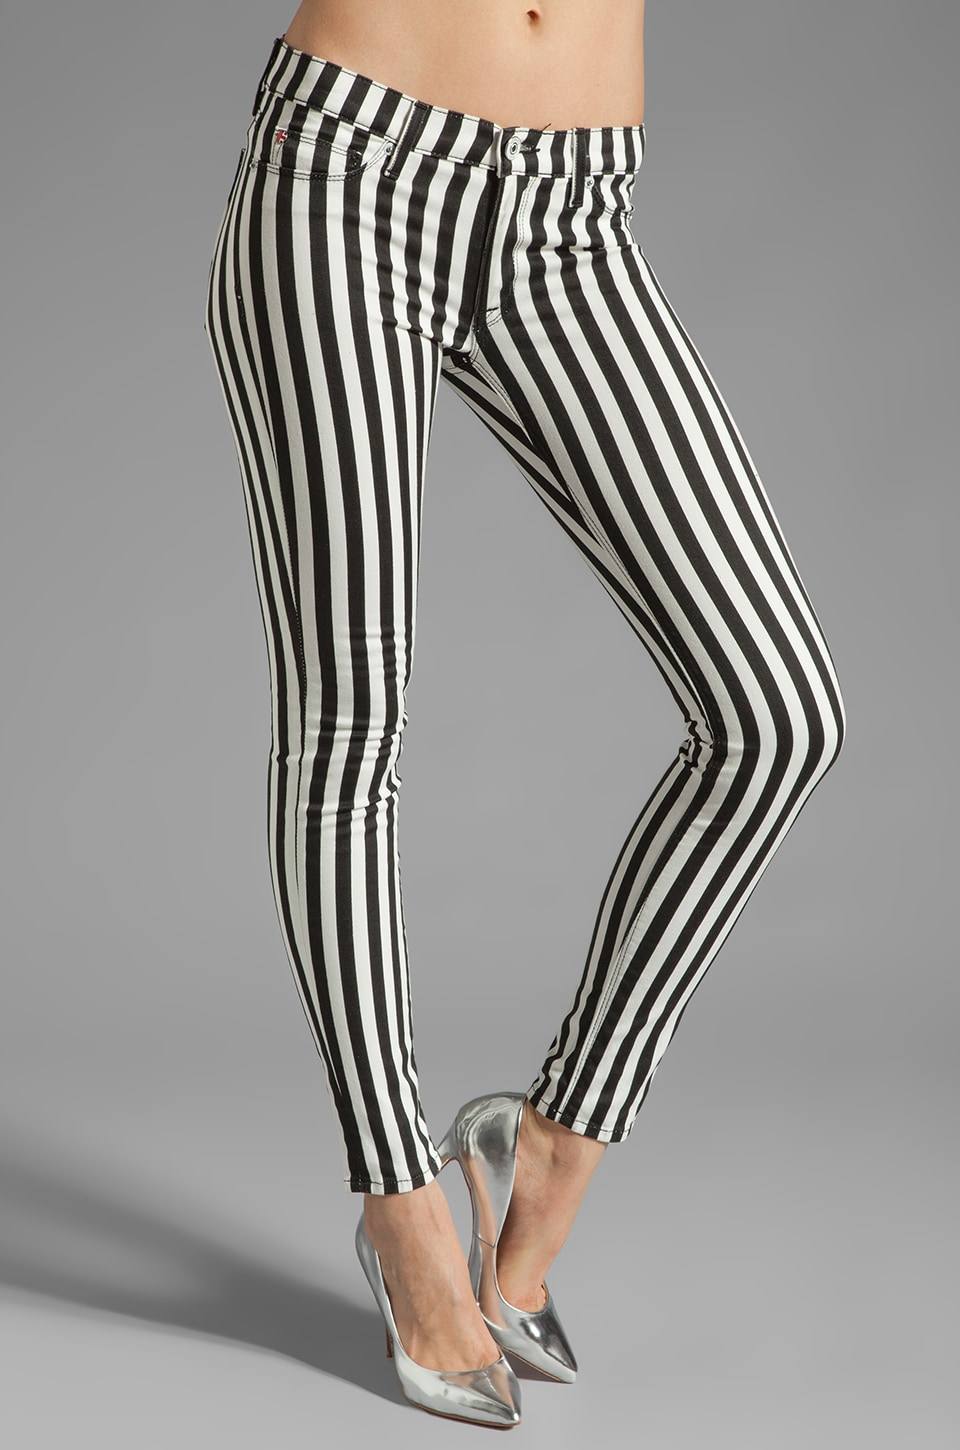 Hudson Jeans Krista Super Skinny in Black/White Stripe